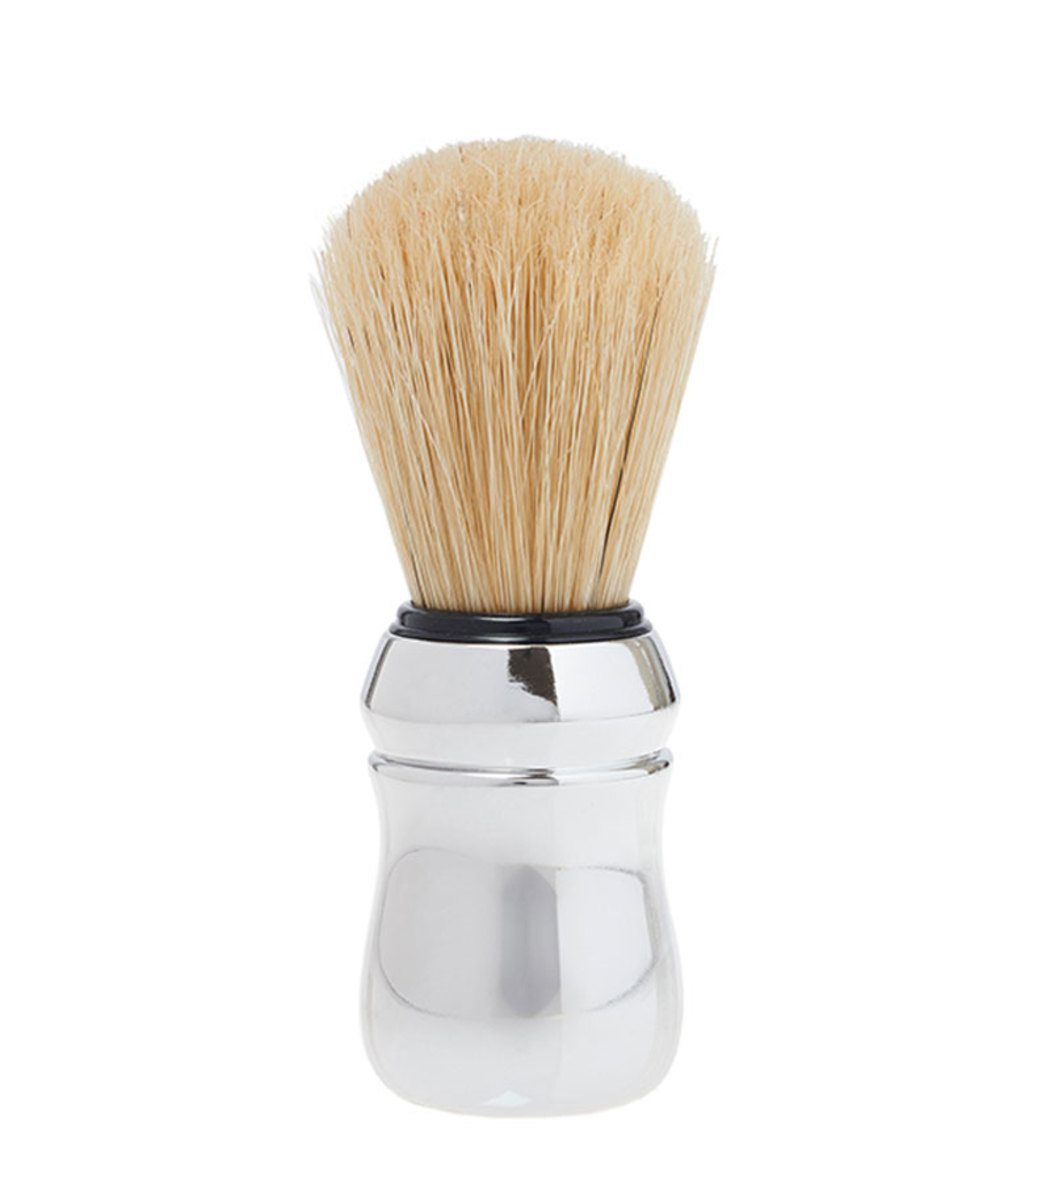 Proraso Shave Brush In N/a